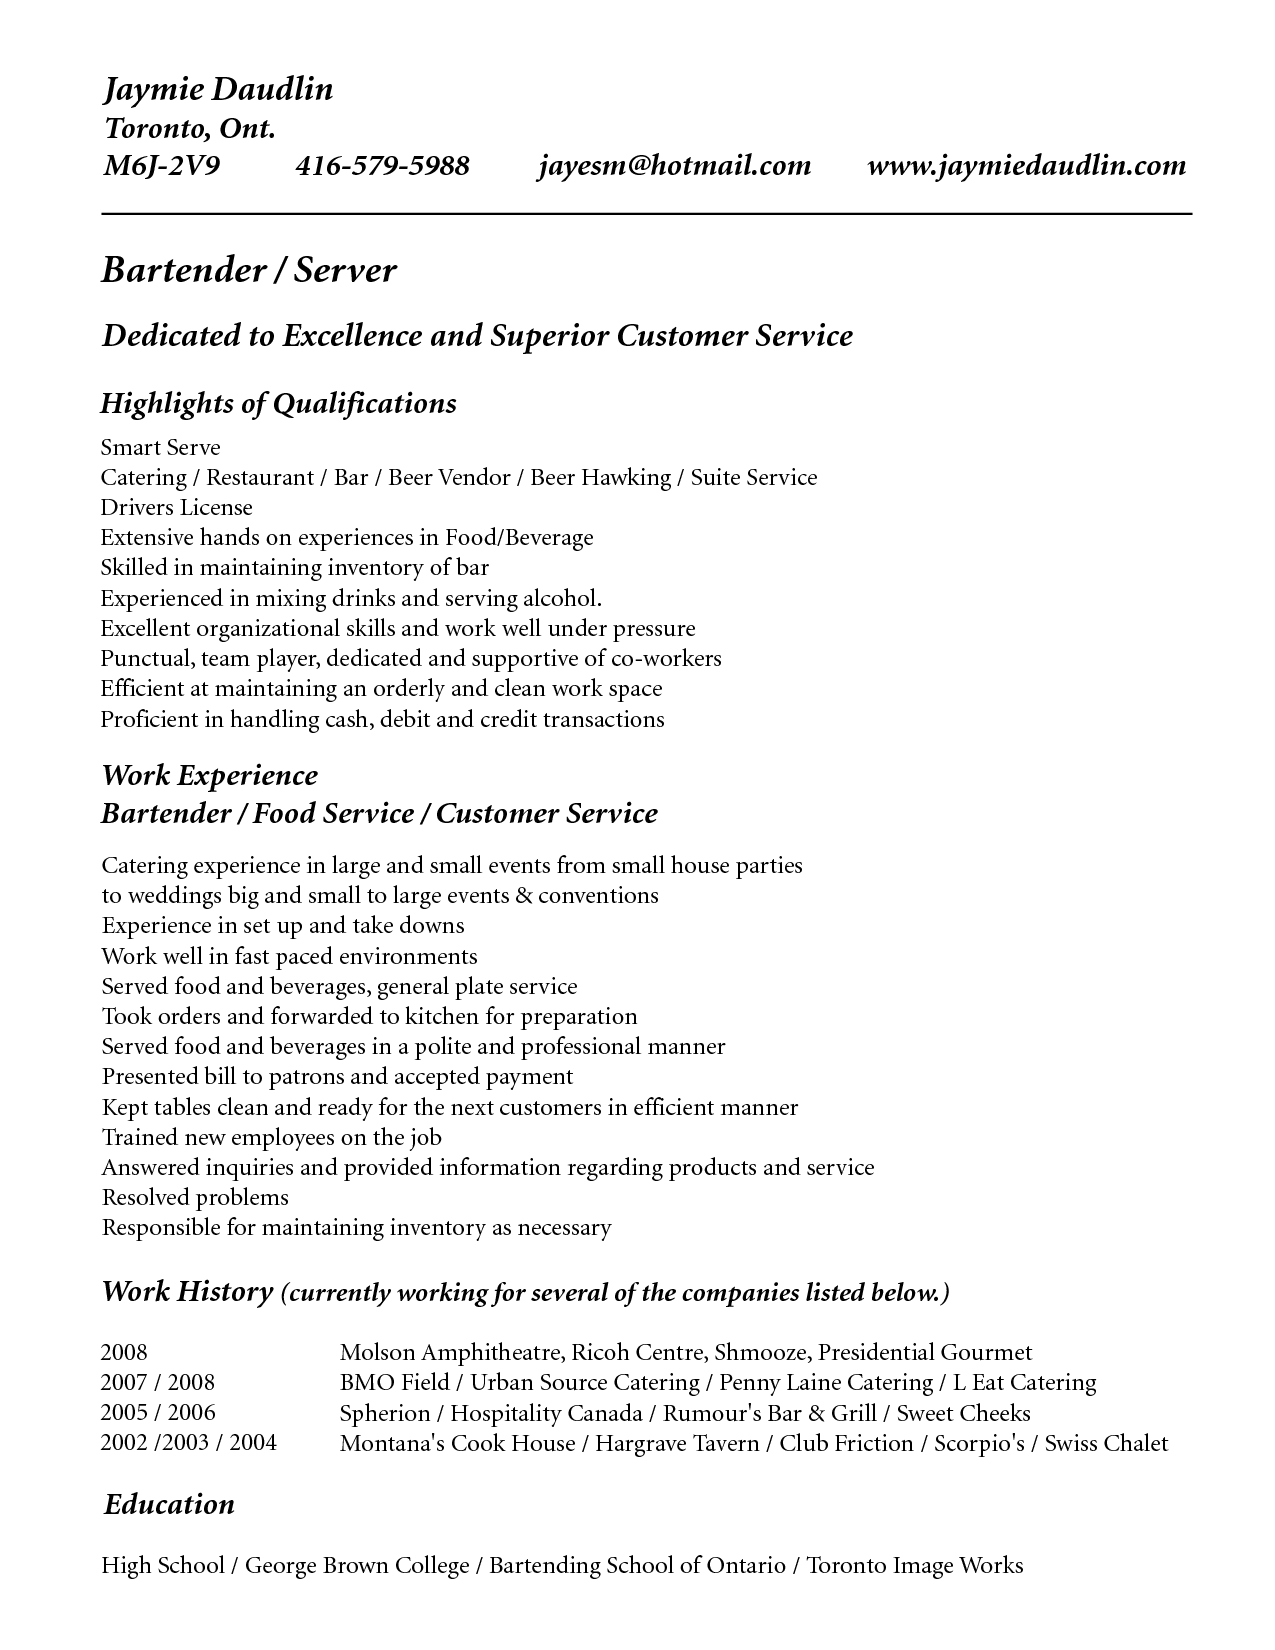 Resume Format Microsoft Word Amusing Resume Template For Bartender No Experience  Httpwww 2018